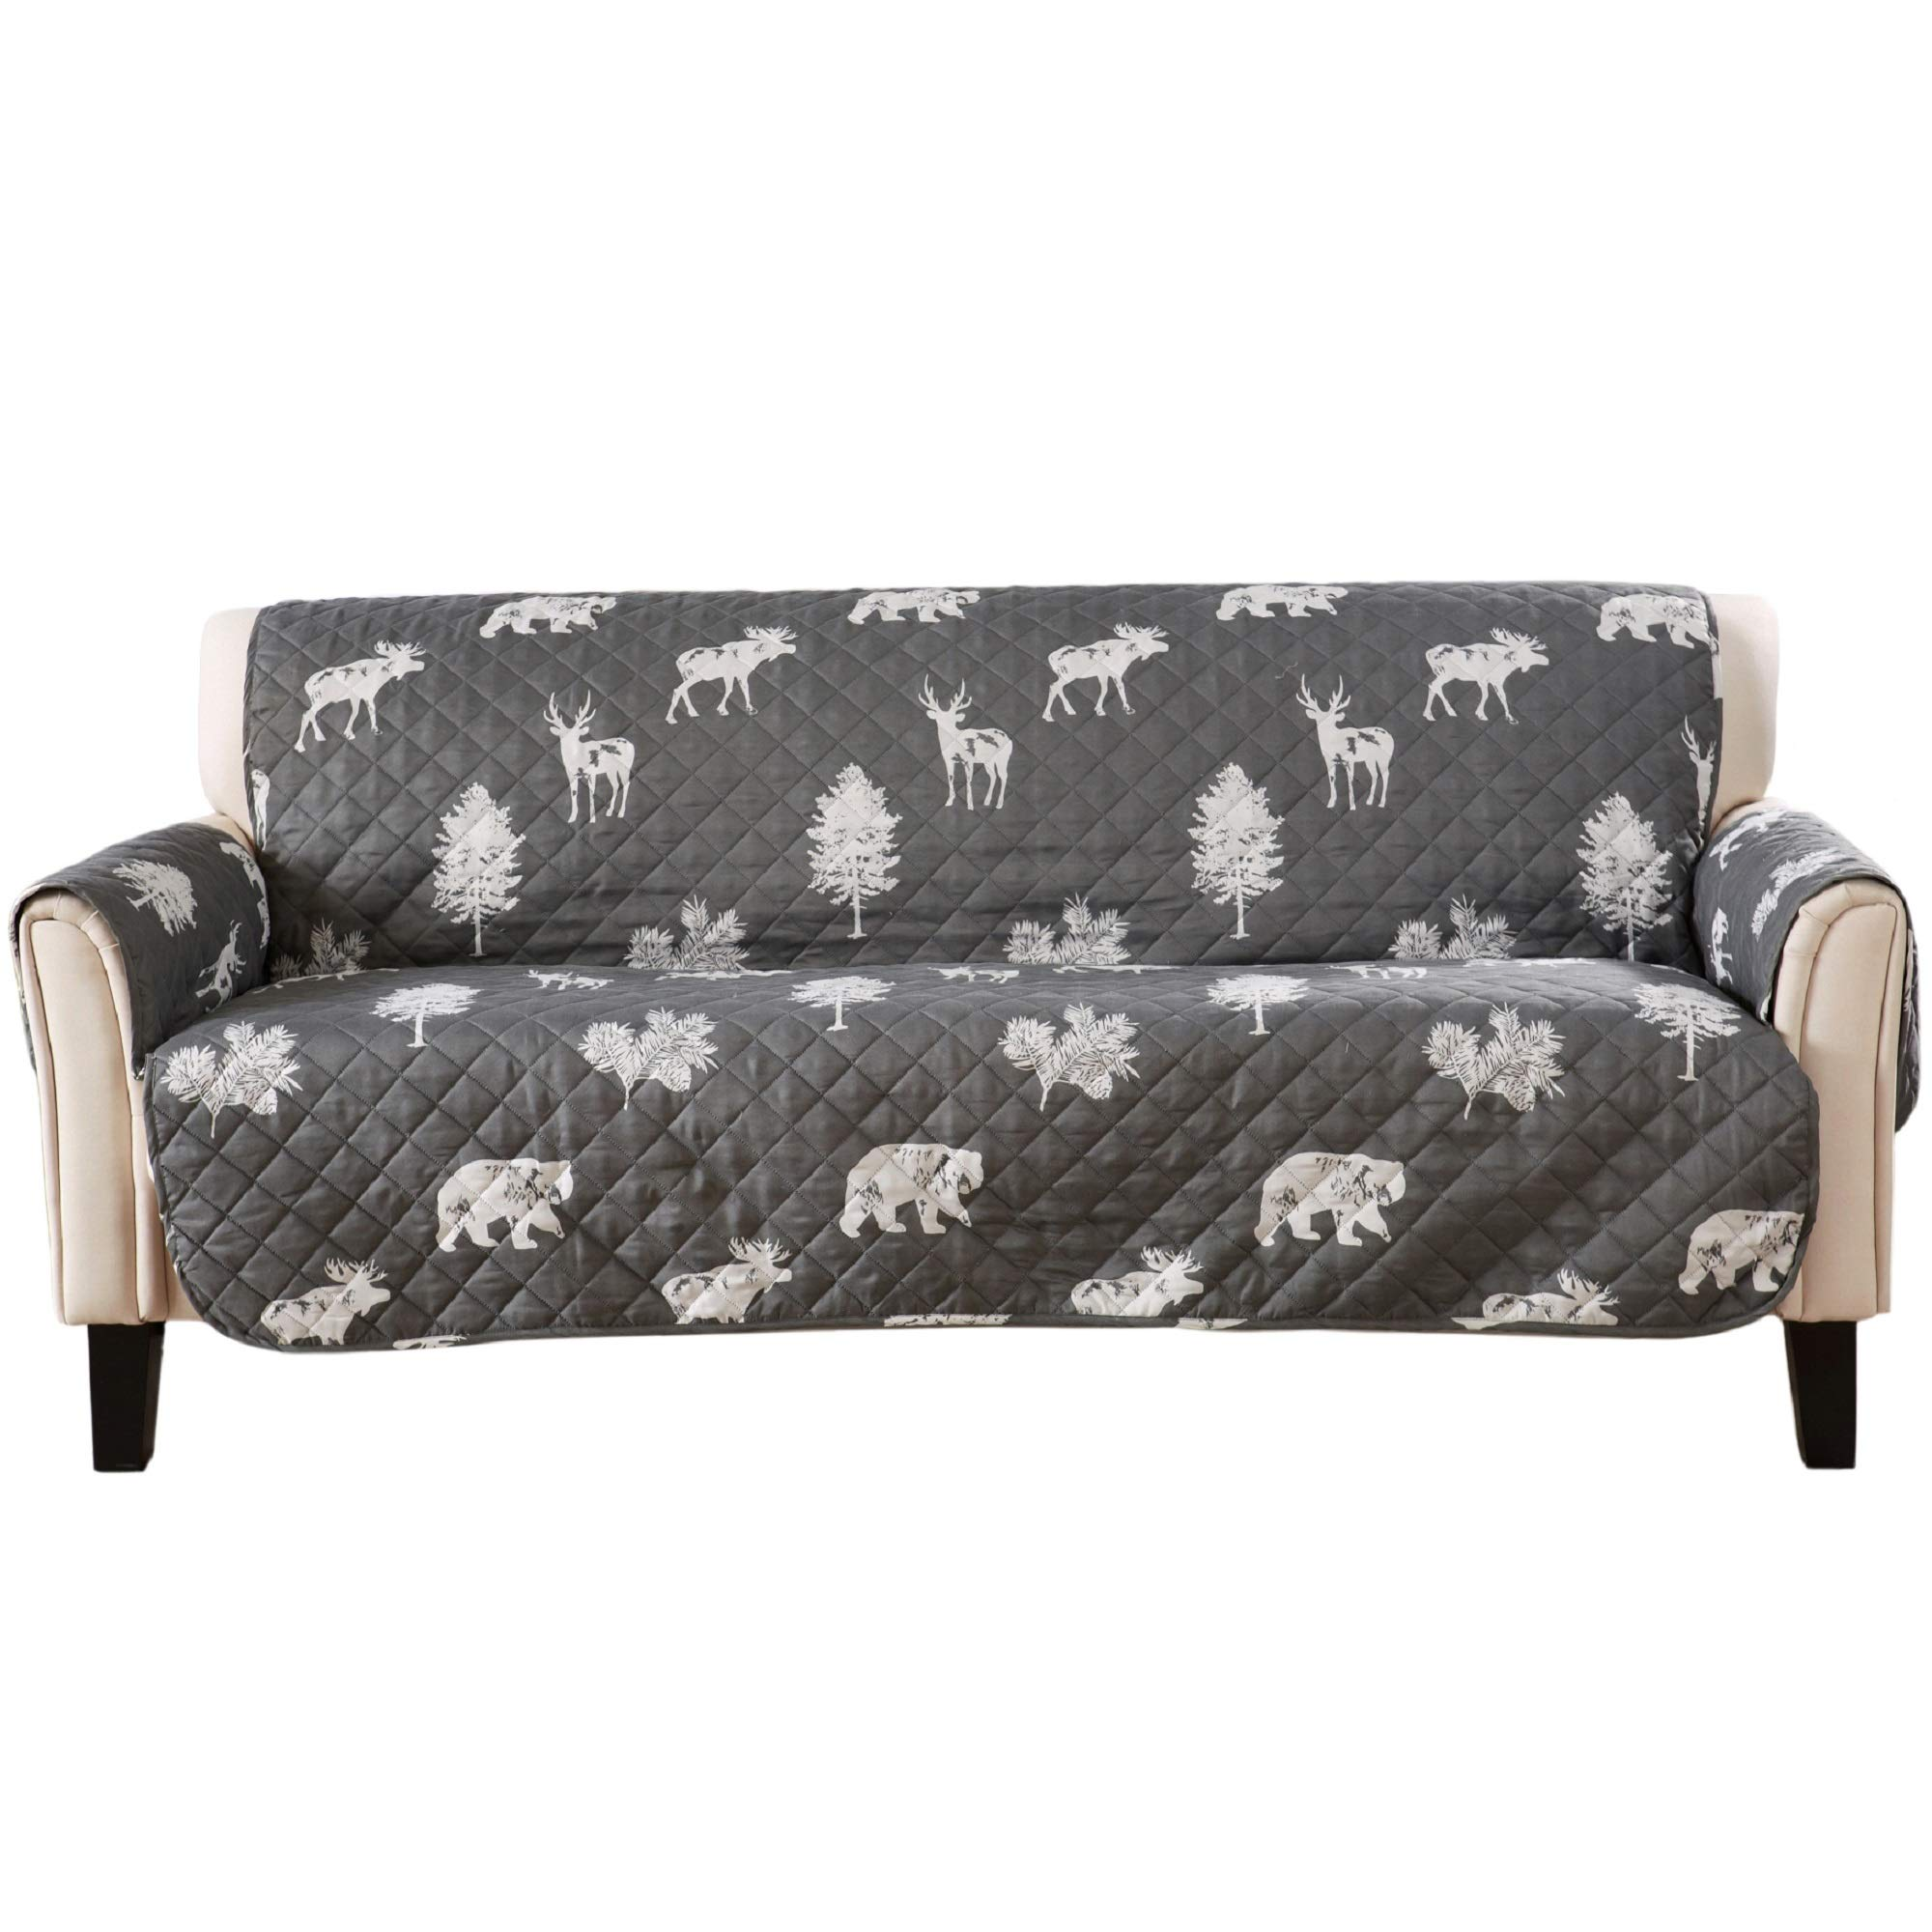 Reversible Stain Resistant Printed Furniture Protector